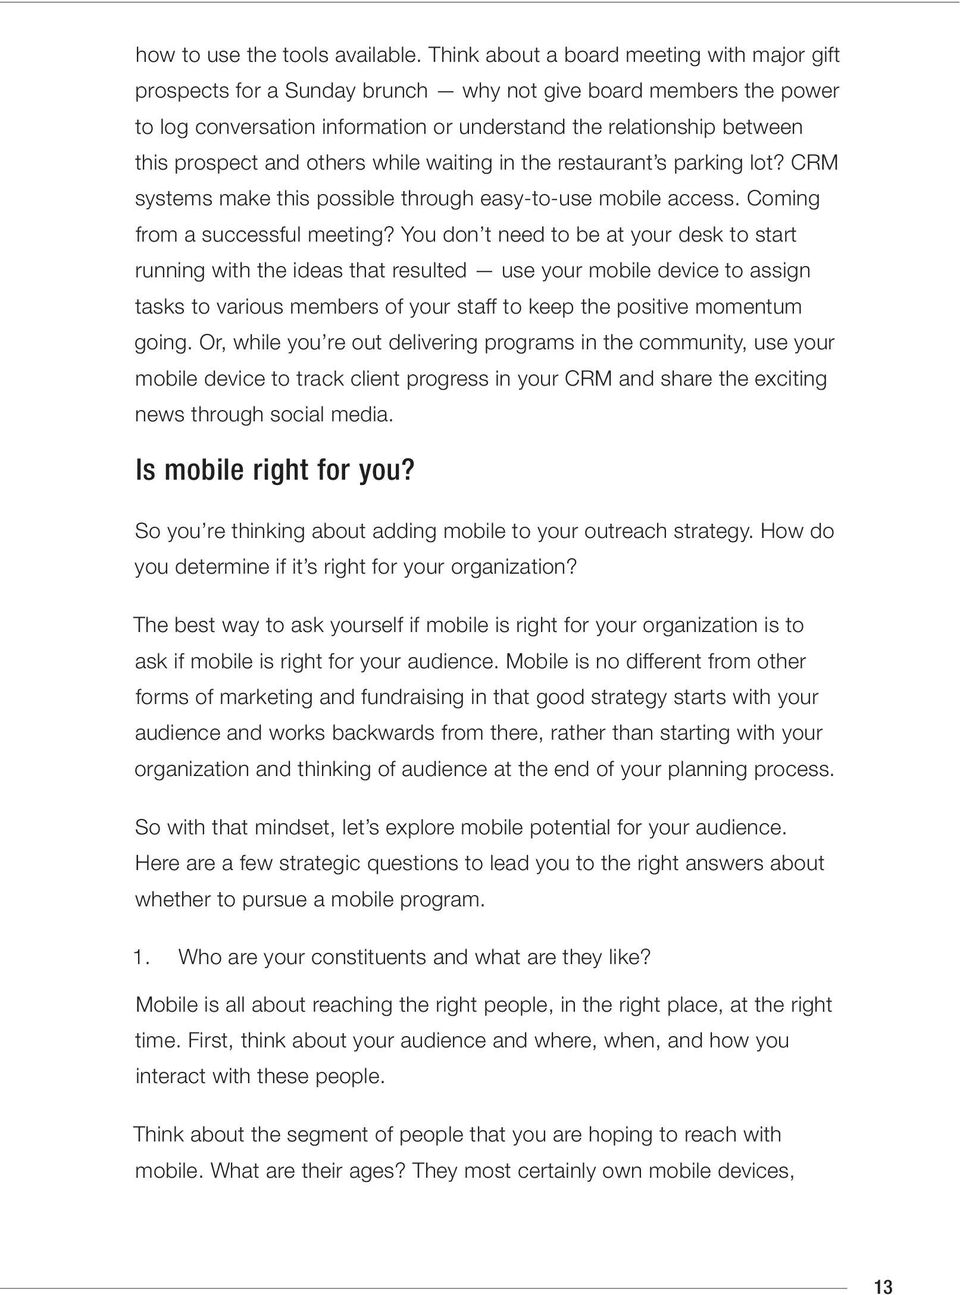 others while waiting in the restaurant s parking lot? CRM systems make this possible through easy-to-use mobile access. Coming from a successful meeting?